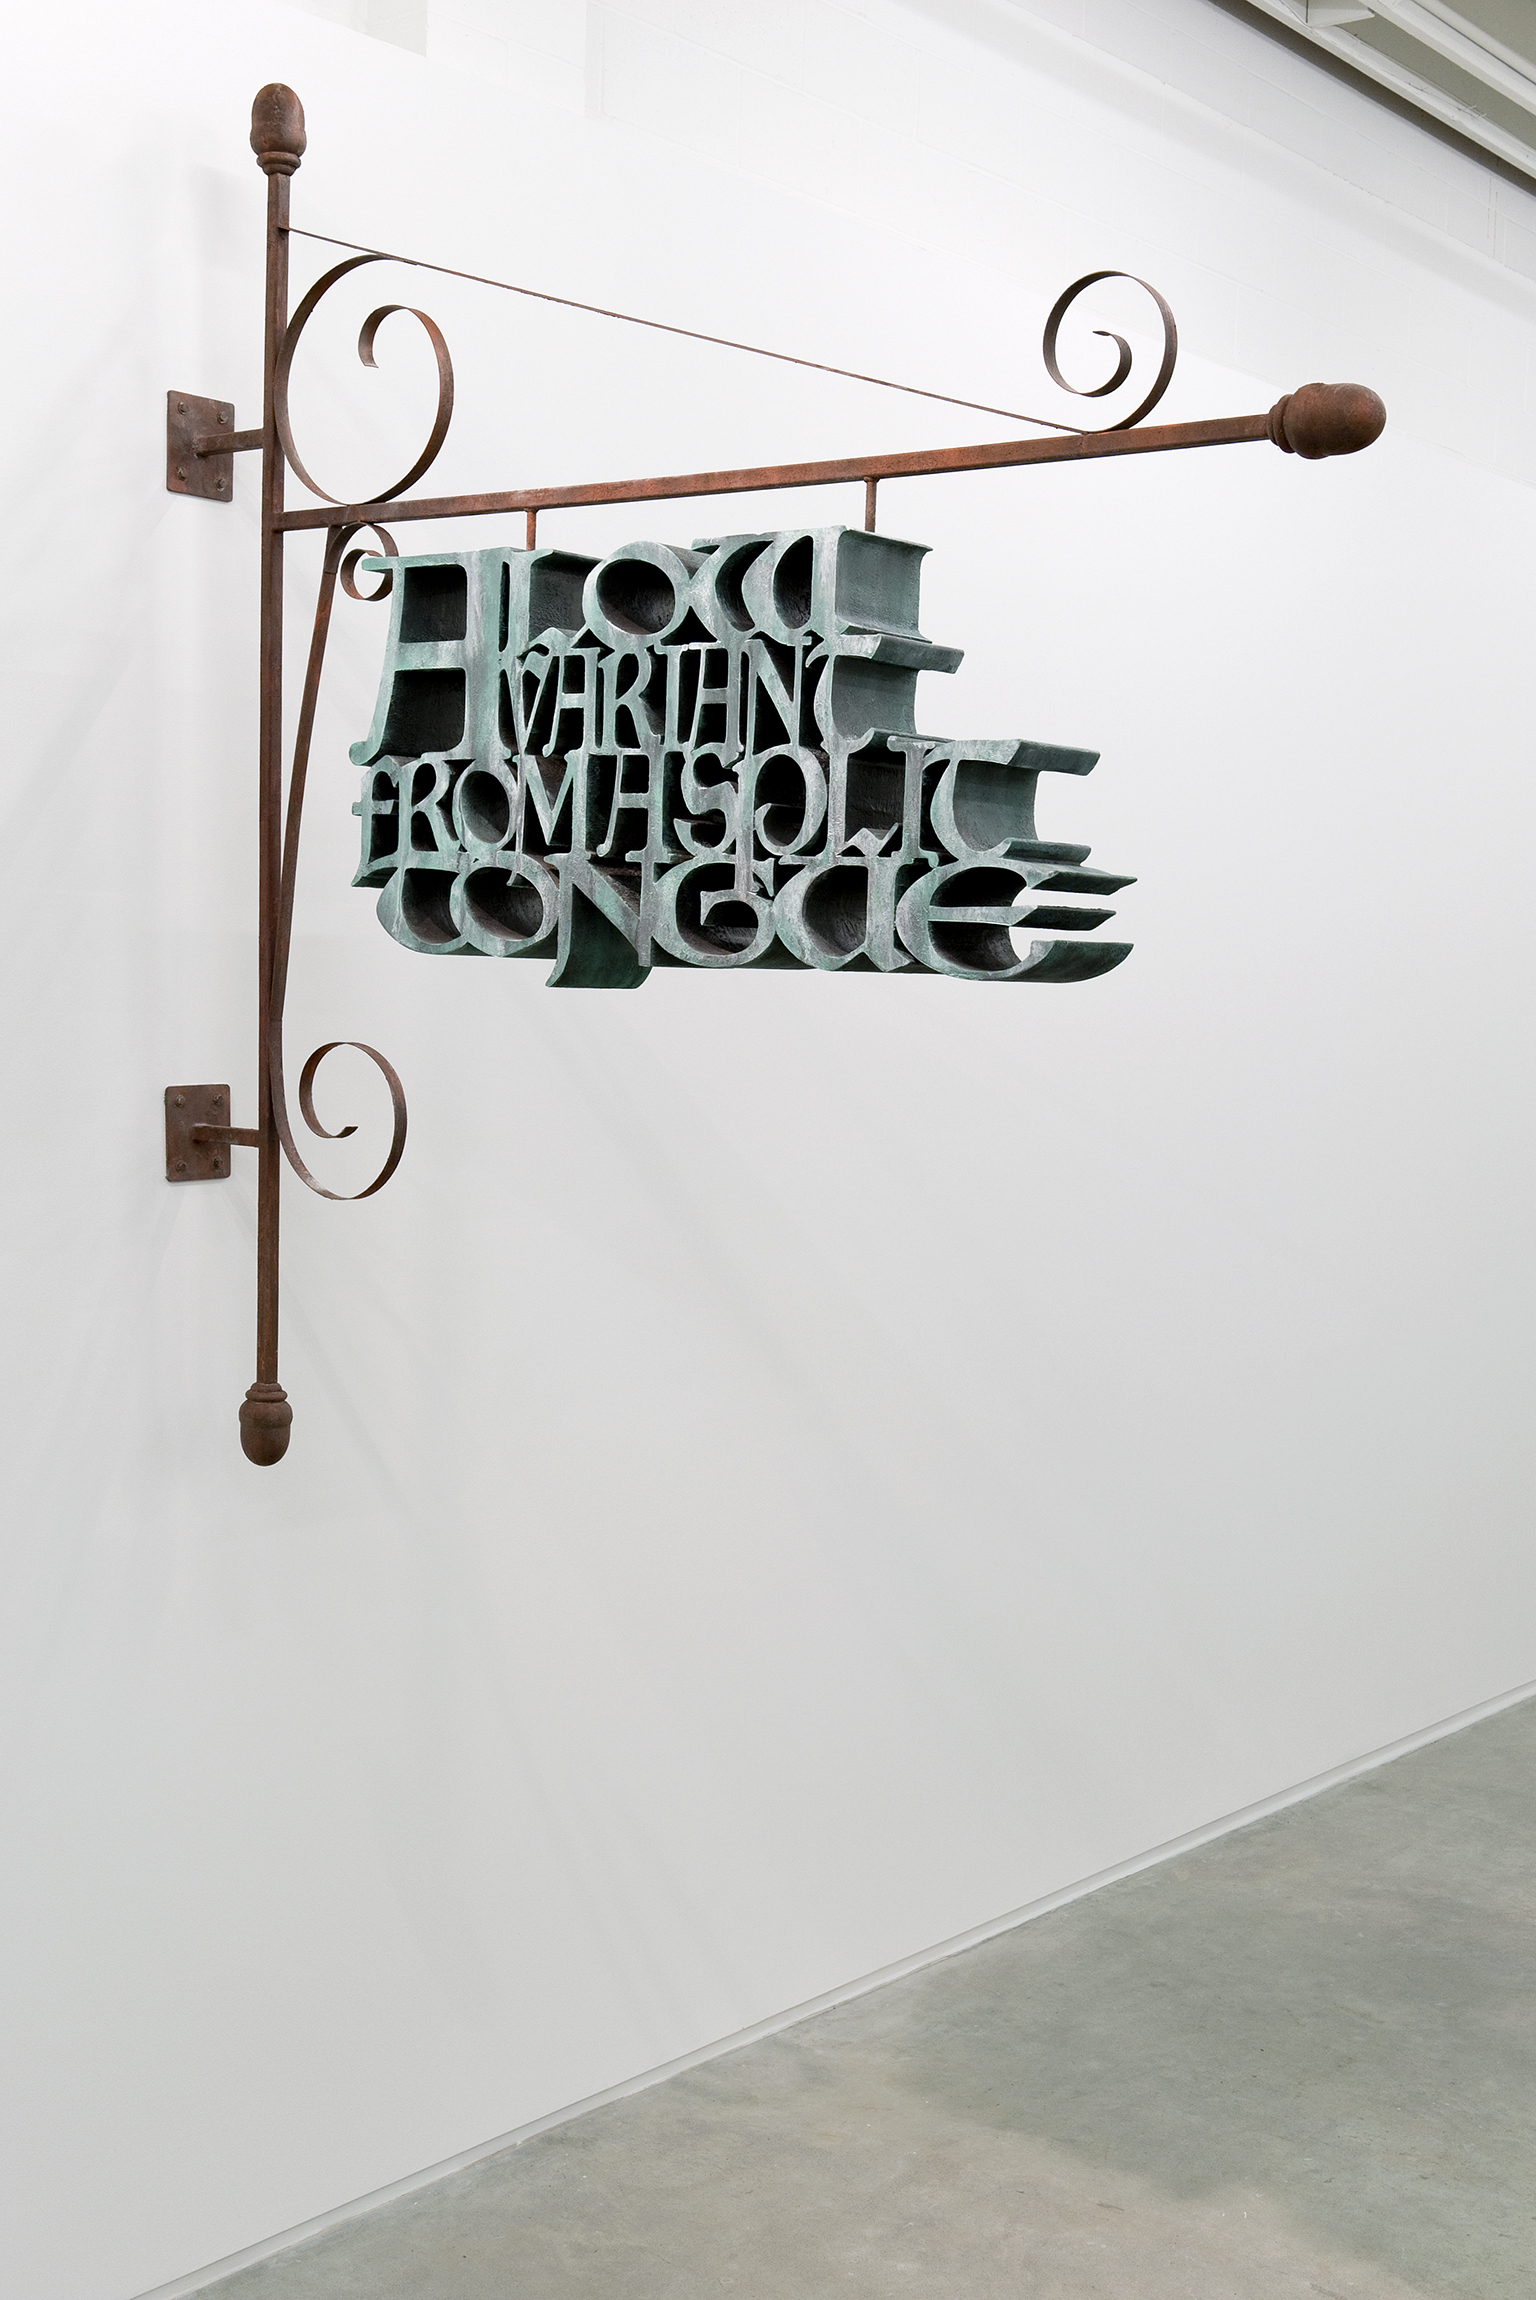 Alex Morrison, A Low Variant from a Split Tongue, 2010, steel, MDF, drywall compound, acrylic paint, 82 x 77 x 7 in. (208 x 196 x 18 cm) by